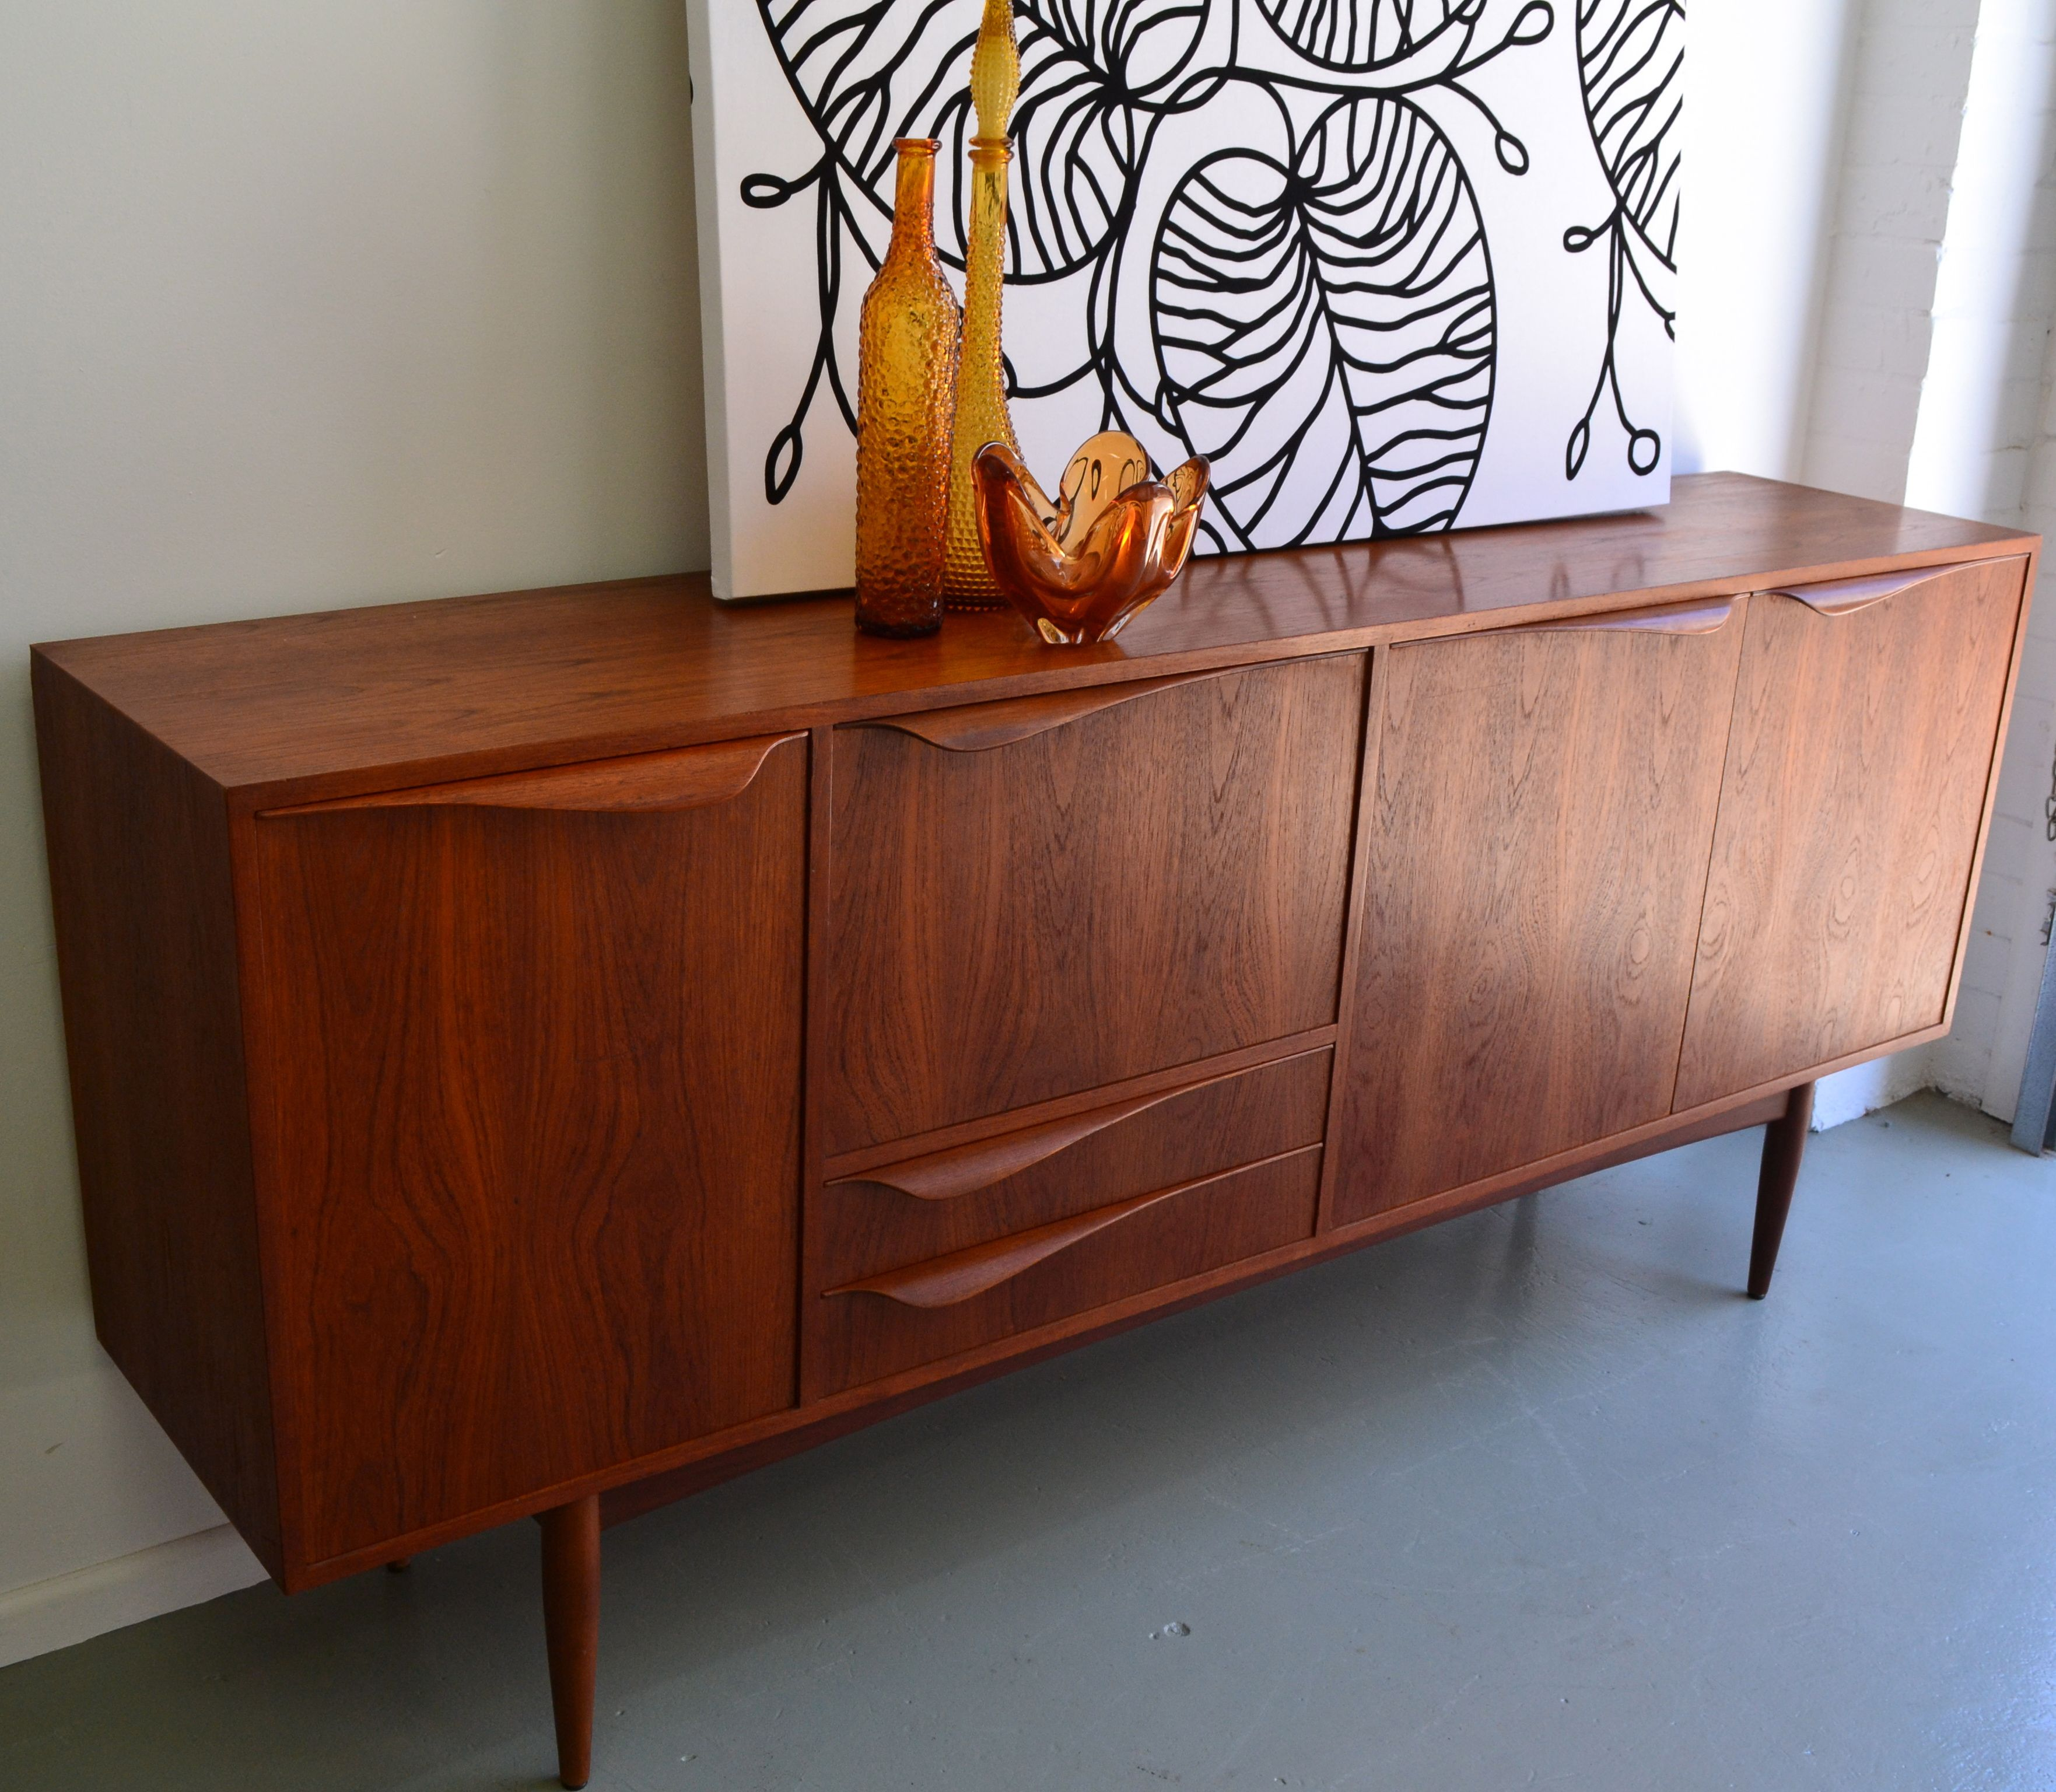 60s Style Couches Danish Style Teak 60 39s Sideboard Refurbished By Www